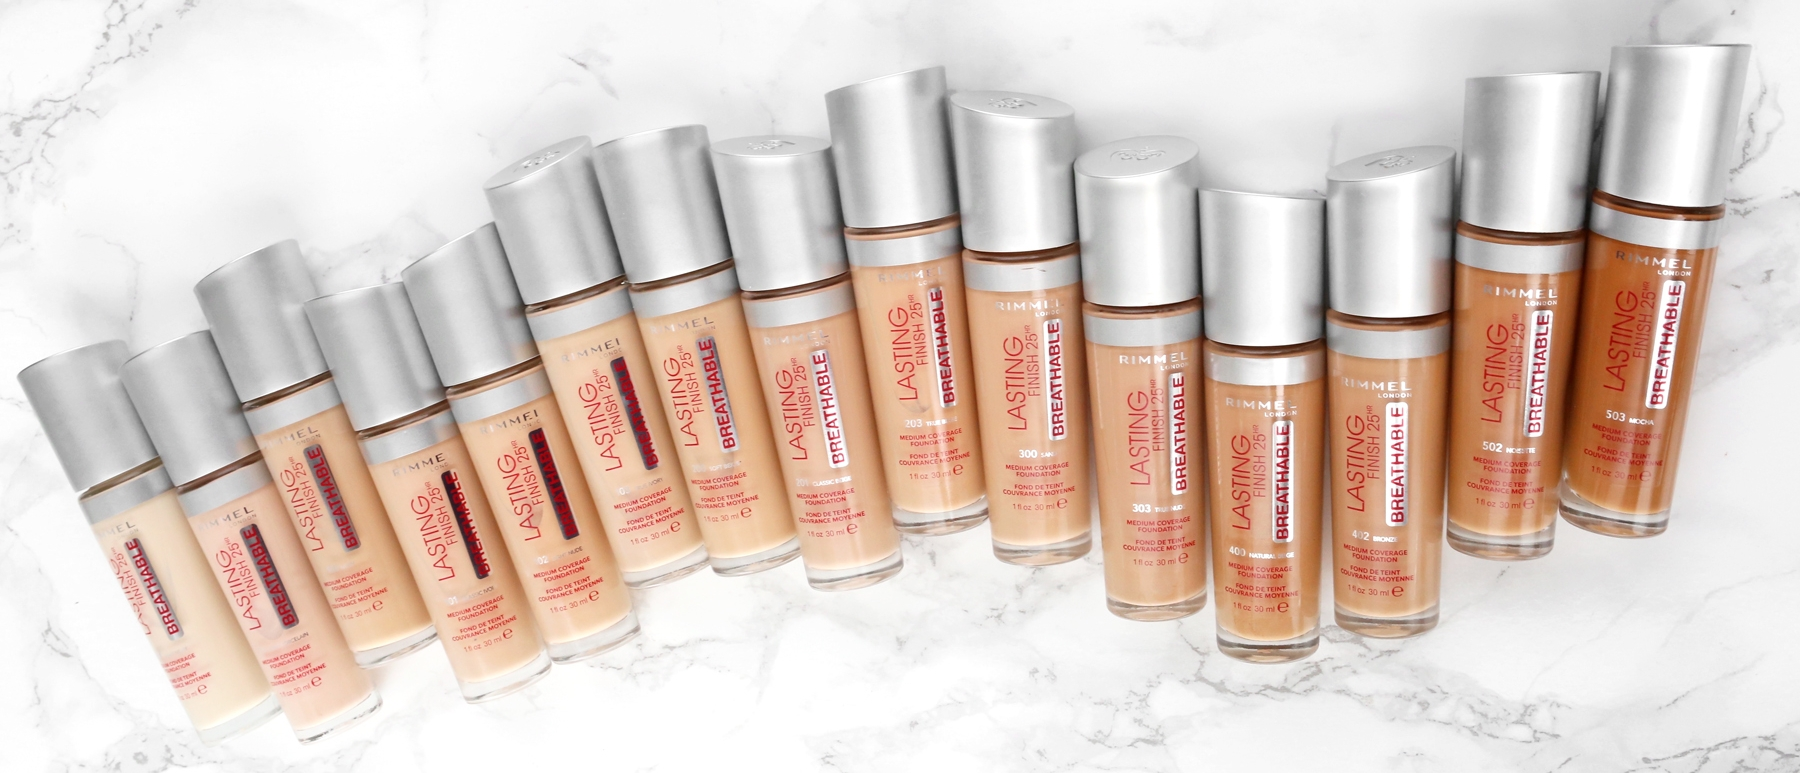 Review- Rimmel's Lasting Finish Breathable Collection - 25 hour wear foundation, concealer, and breathable primer - woahstyle.com - toronto beauty blog by nathalie martin_7296.jpg